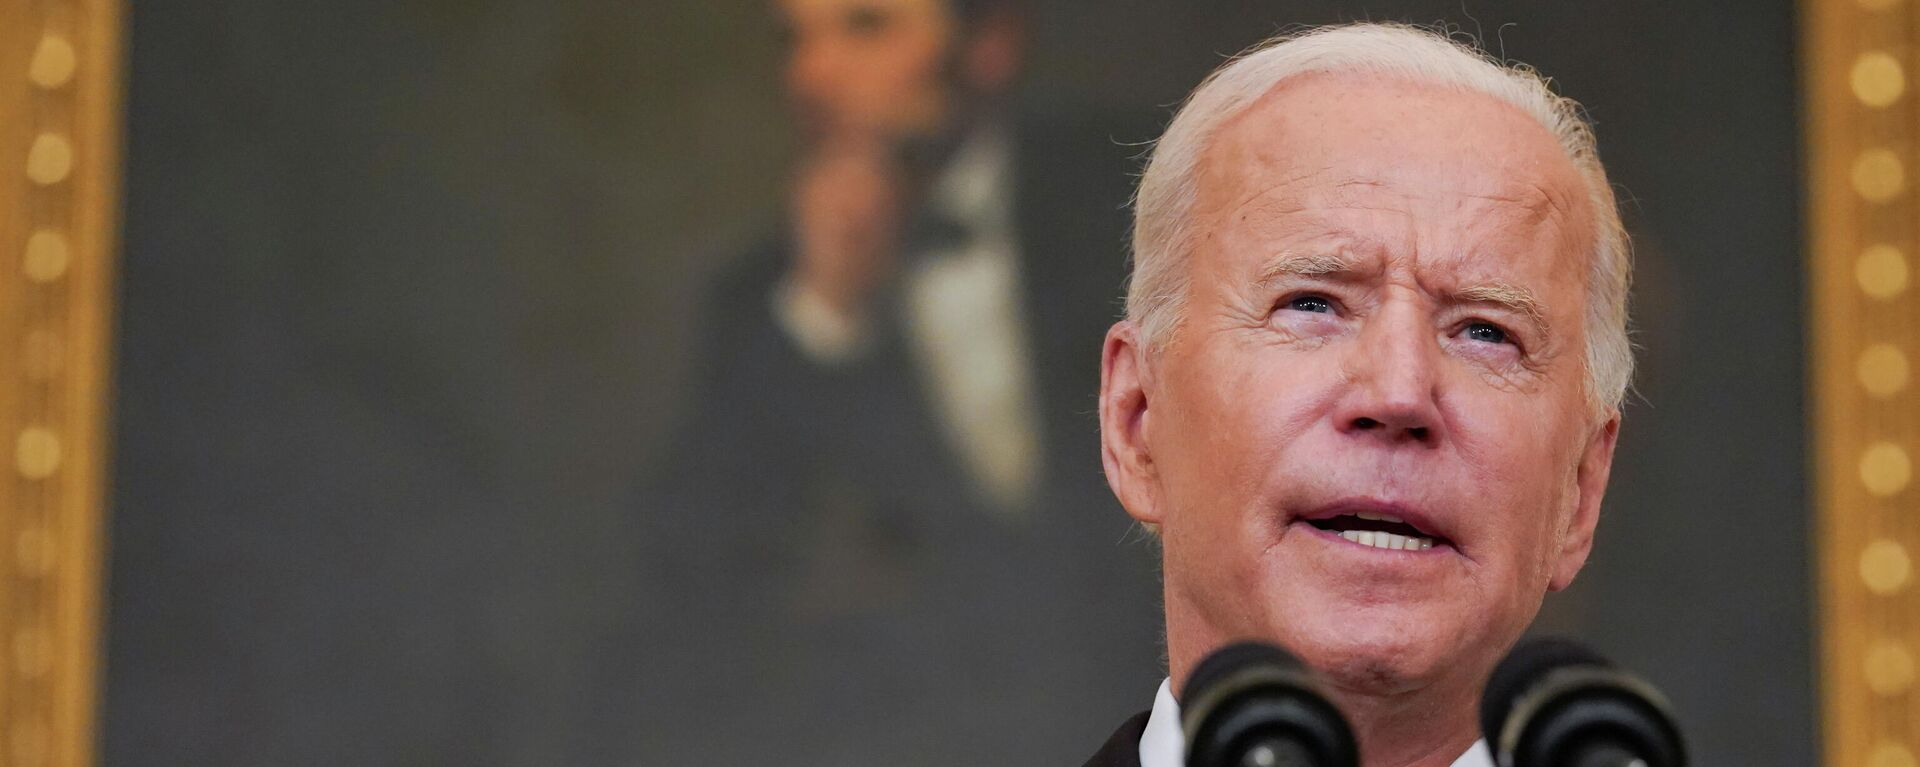 US President Joe Biden delivers remarks on the Delta variant and his administration's efforts to increase vaccinations, from the State Dining Room of the White House in Washington, US, September 9, 2021 - Sputnik International, 1920, 14.09.2021